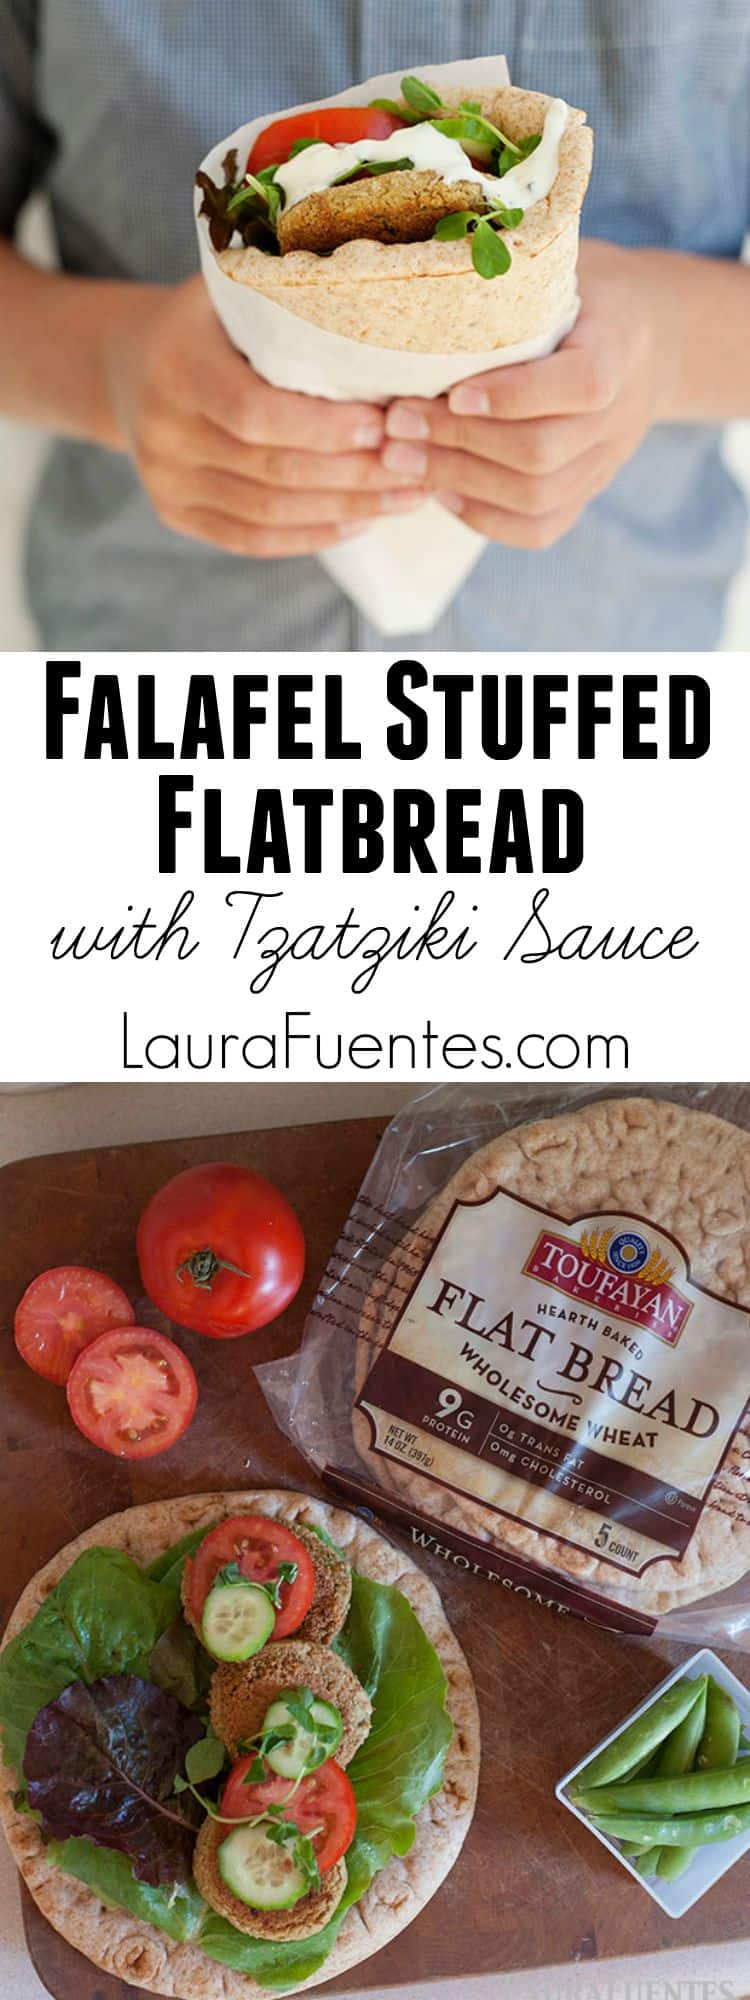 Love healthy Mediterranean food? Check out this recipe for Falafel Stuffed Flatbread with Tzatziki Sauce.